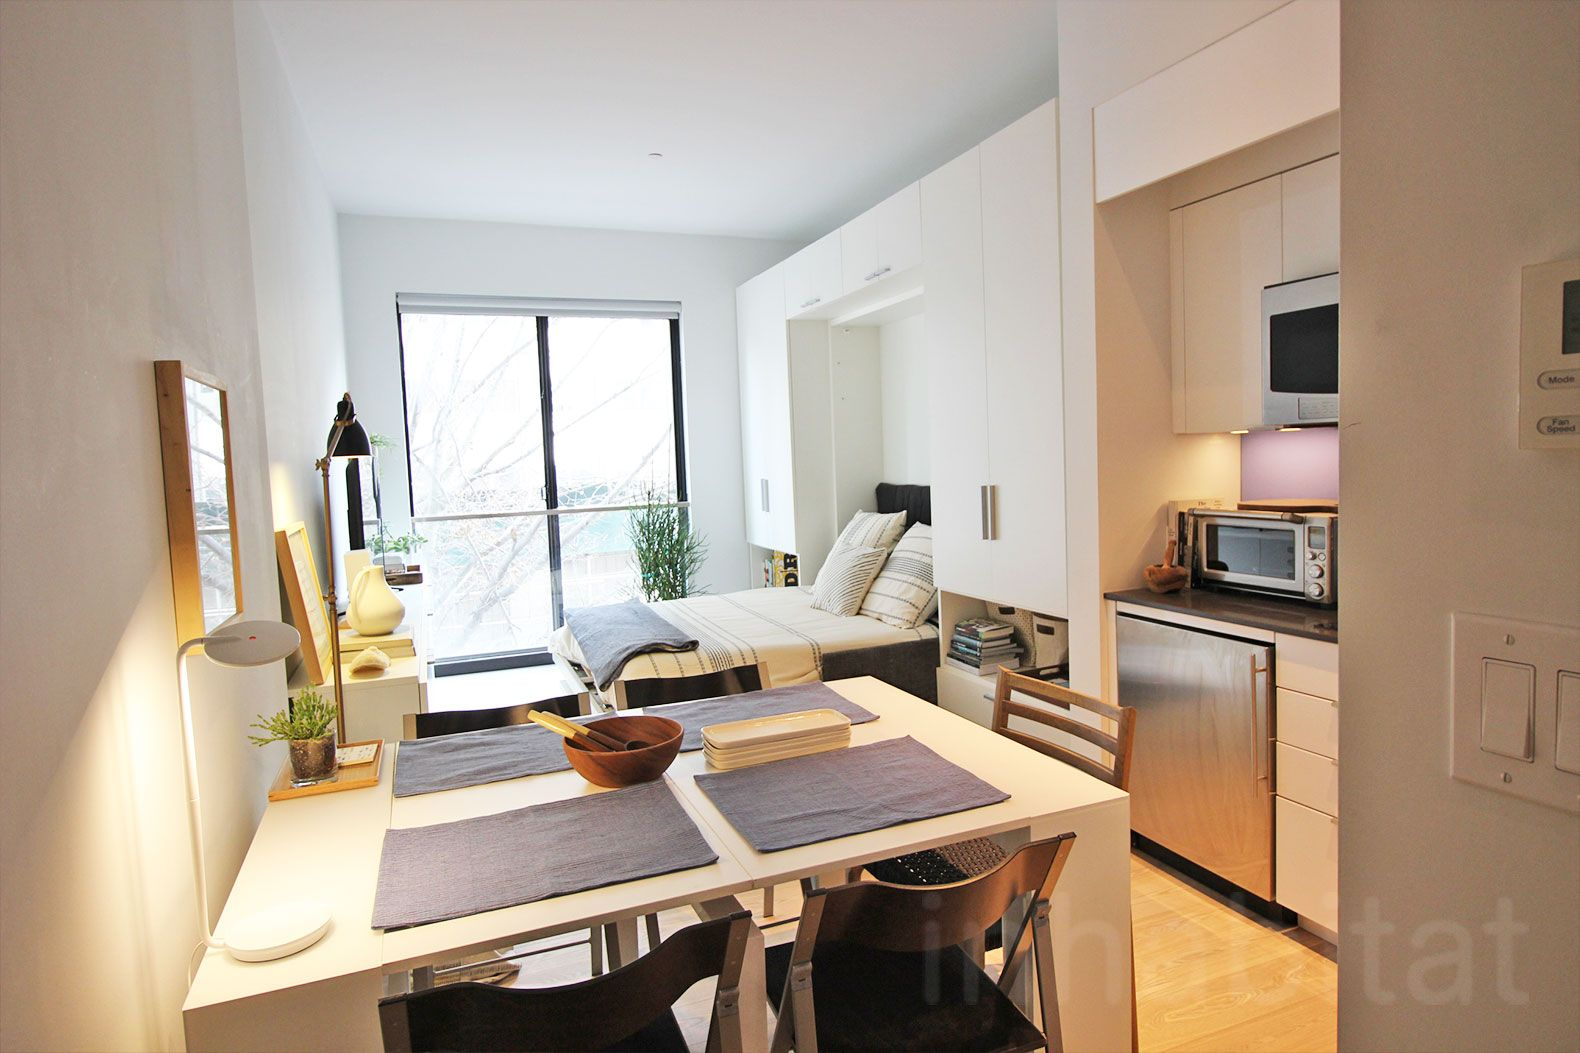 Nyc S First Micro Apartment Units Near Completion At Carmel Place Photos Inhabitat New York